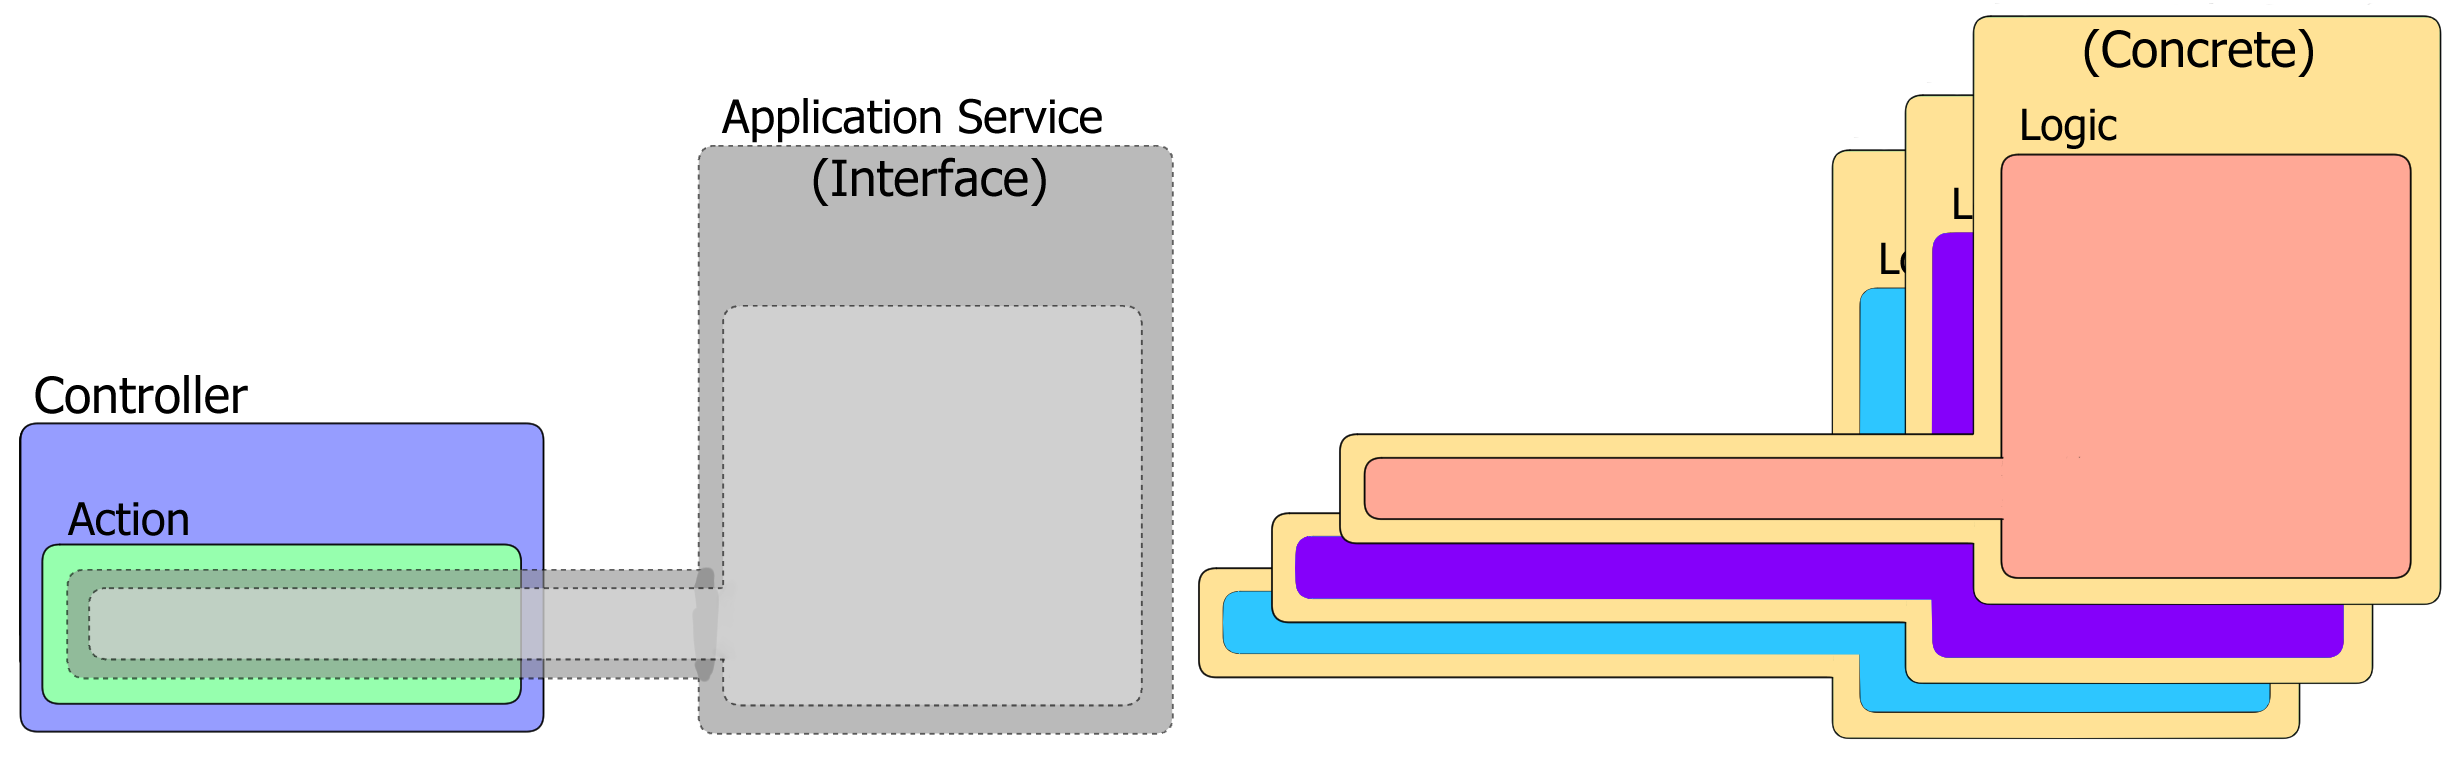 An application service interface